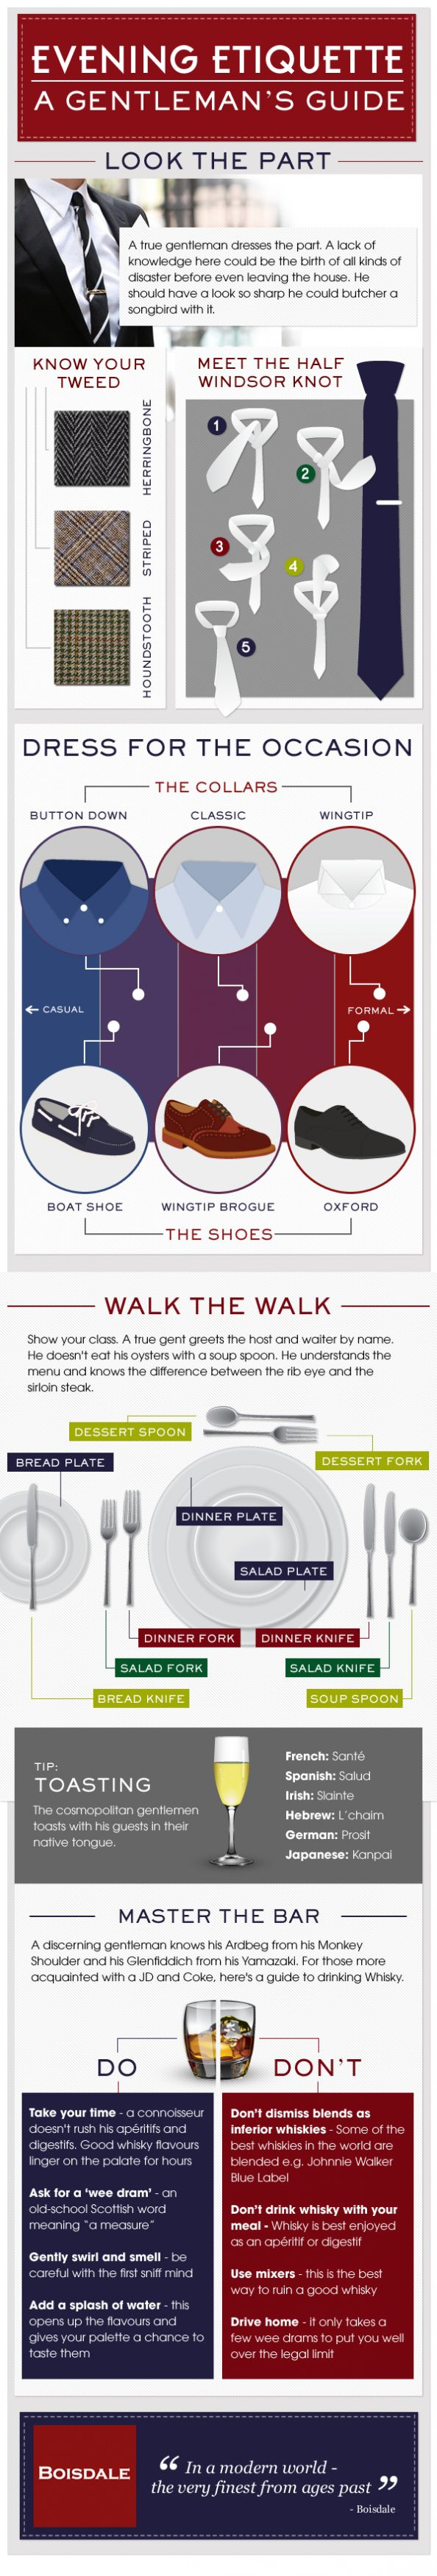 A Gentlemans Guide to Evening Etiquette Infographic. Seems aside from being a whiskey drinker, I've got this down.